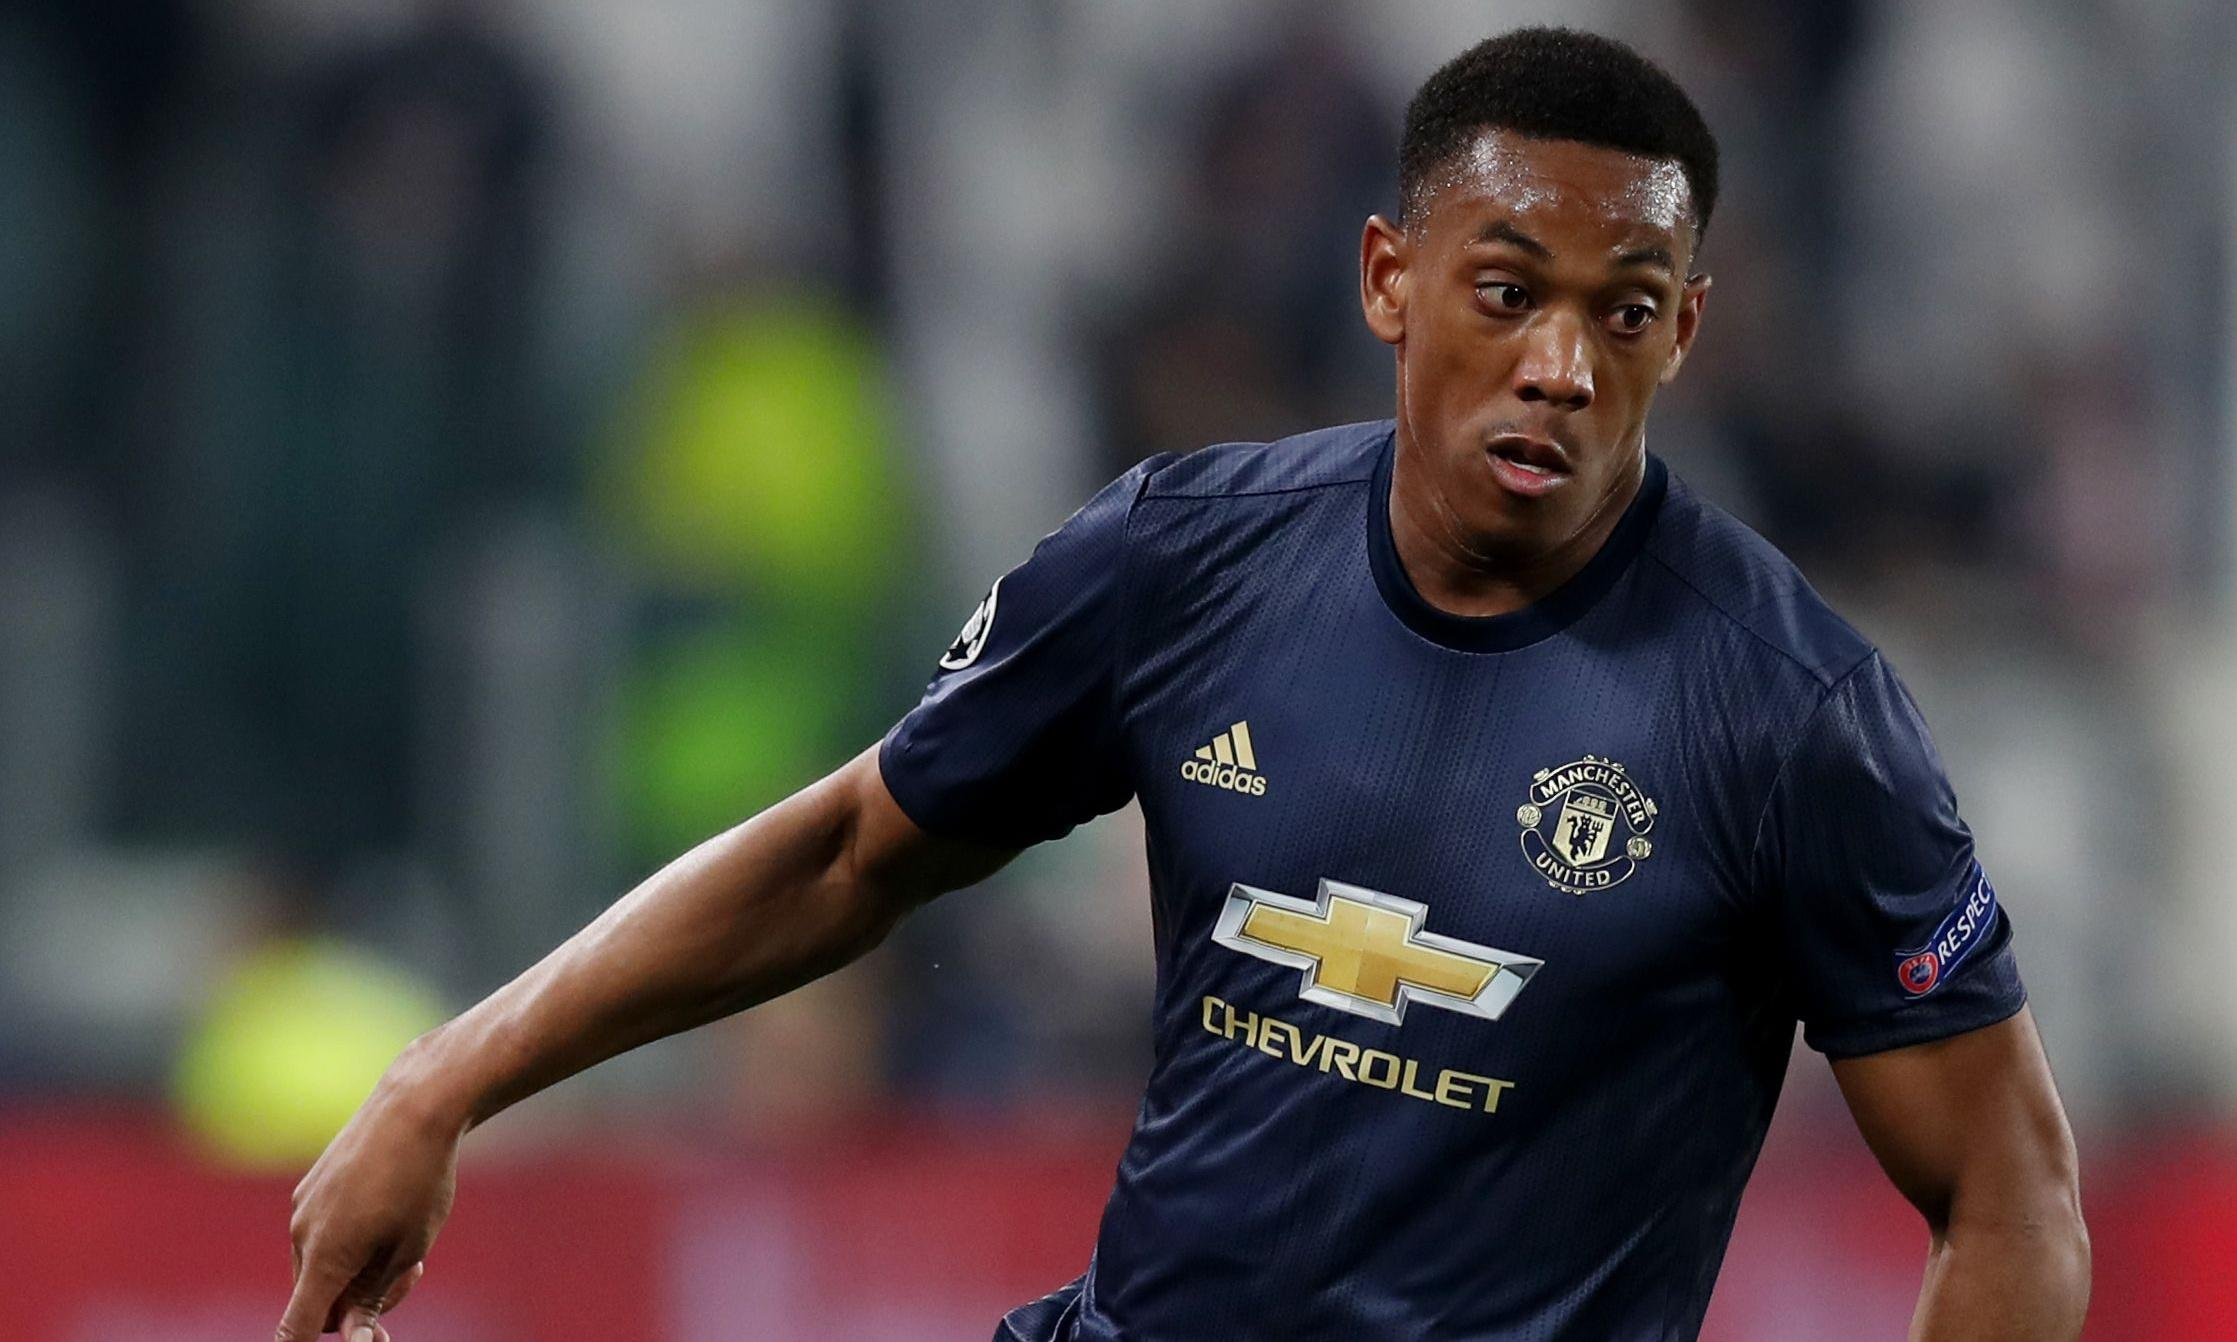 Football transfer rumours: Manchester United to offer Anthony Martial £45m deal?